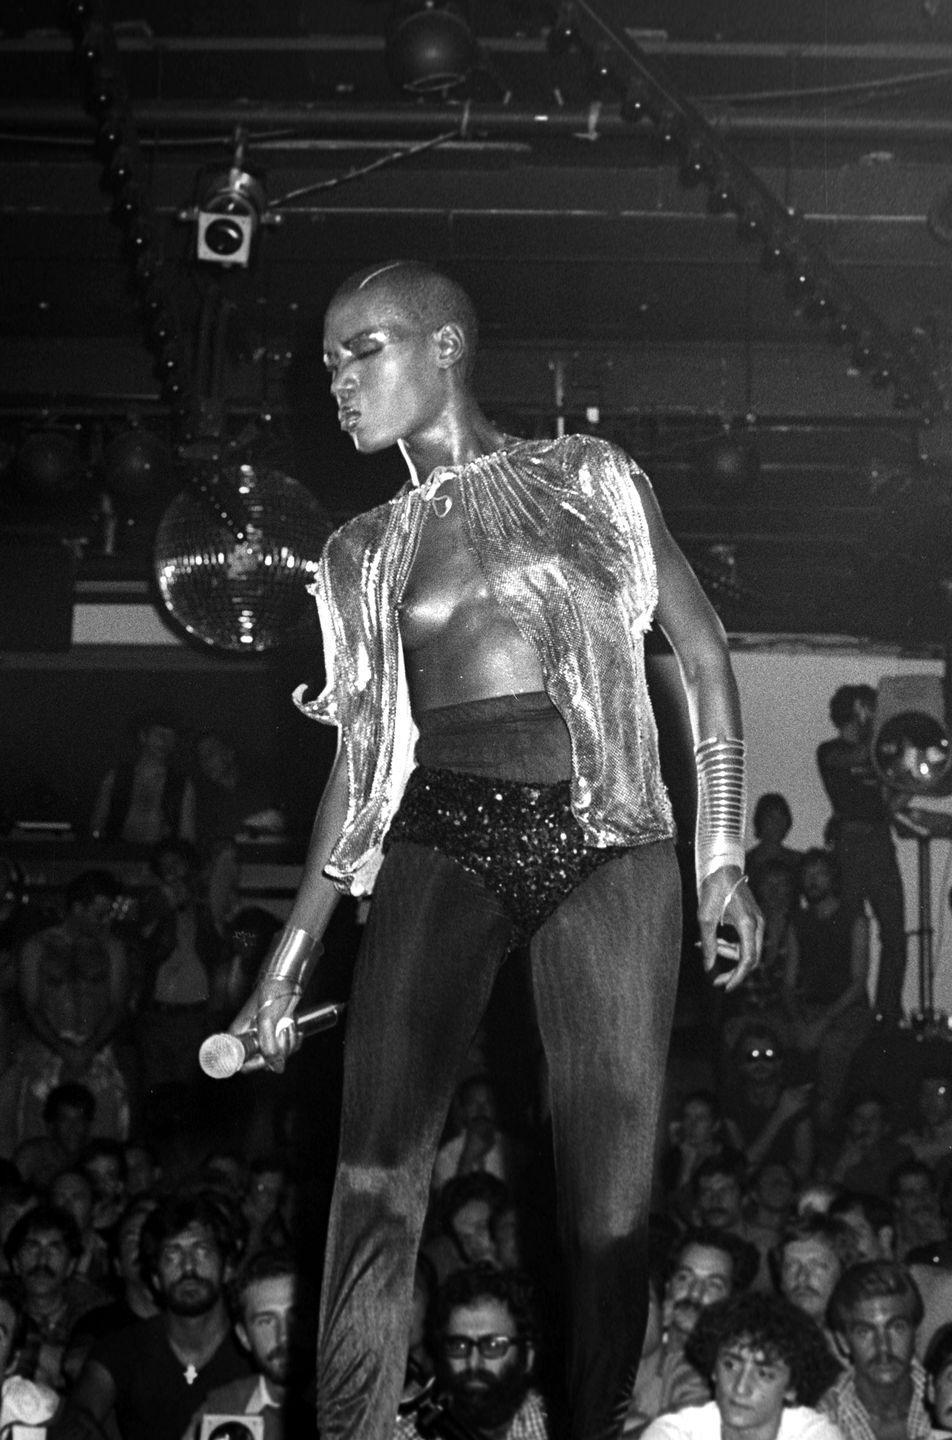 <p>The pioneer of androgynous fashion, Grace Jones was an unforgettable icon of the '80s and influenced the cross-dressing movement. Another staple figure in the disco and nightclub scene, she has unforgettable style.</p>